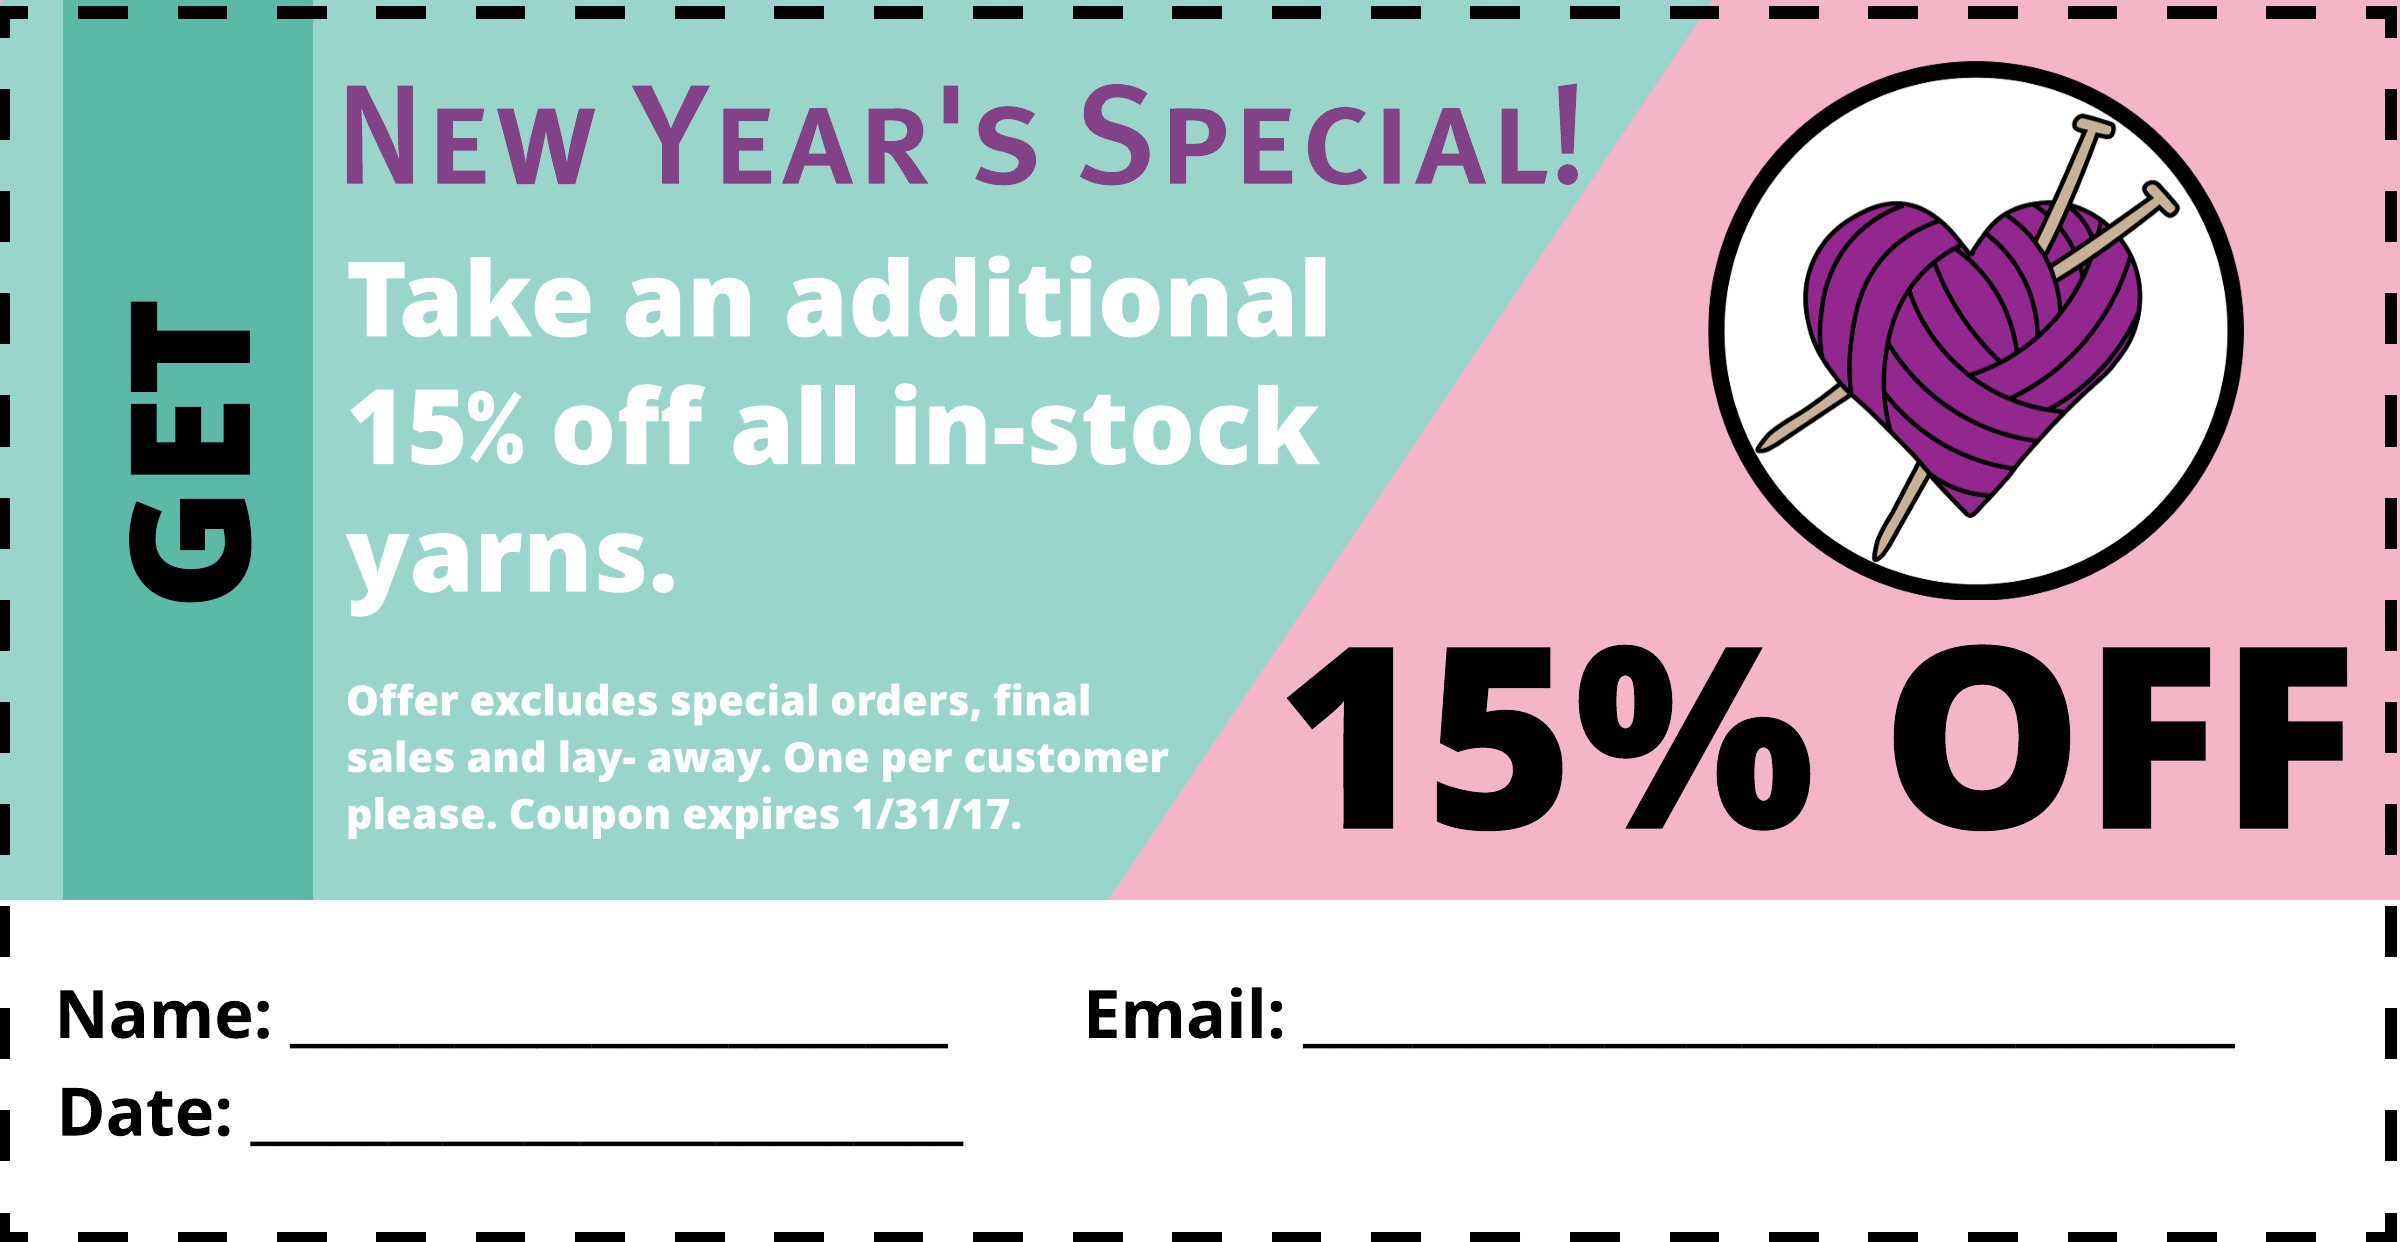 New Years Special! - Take an additional 15% off all in-stock yarns.